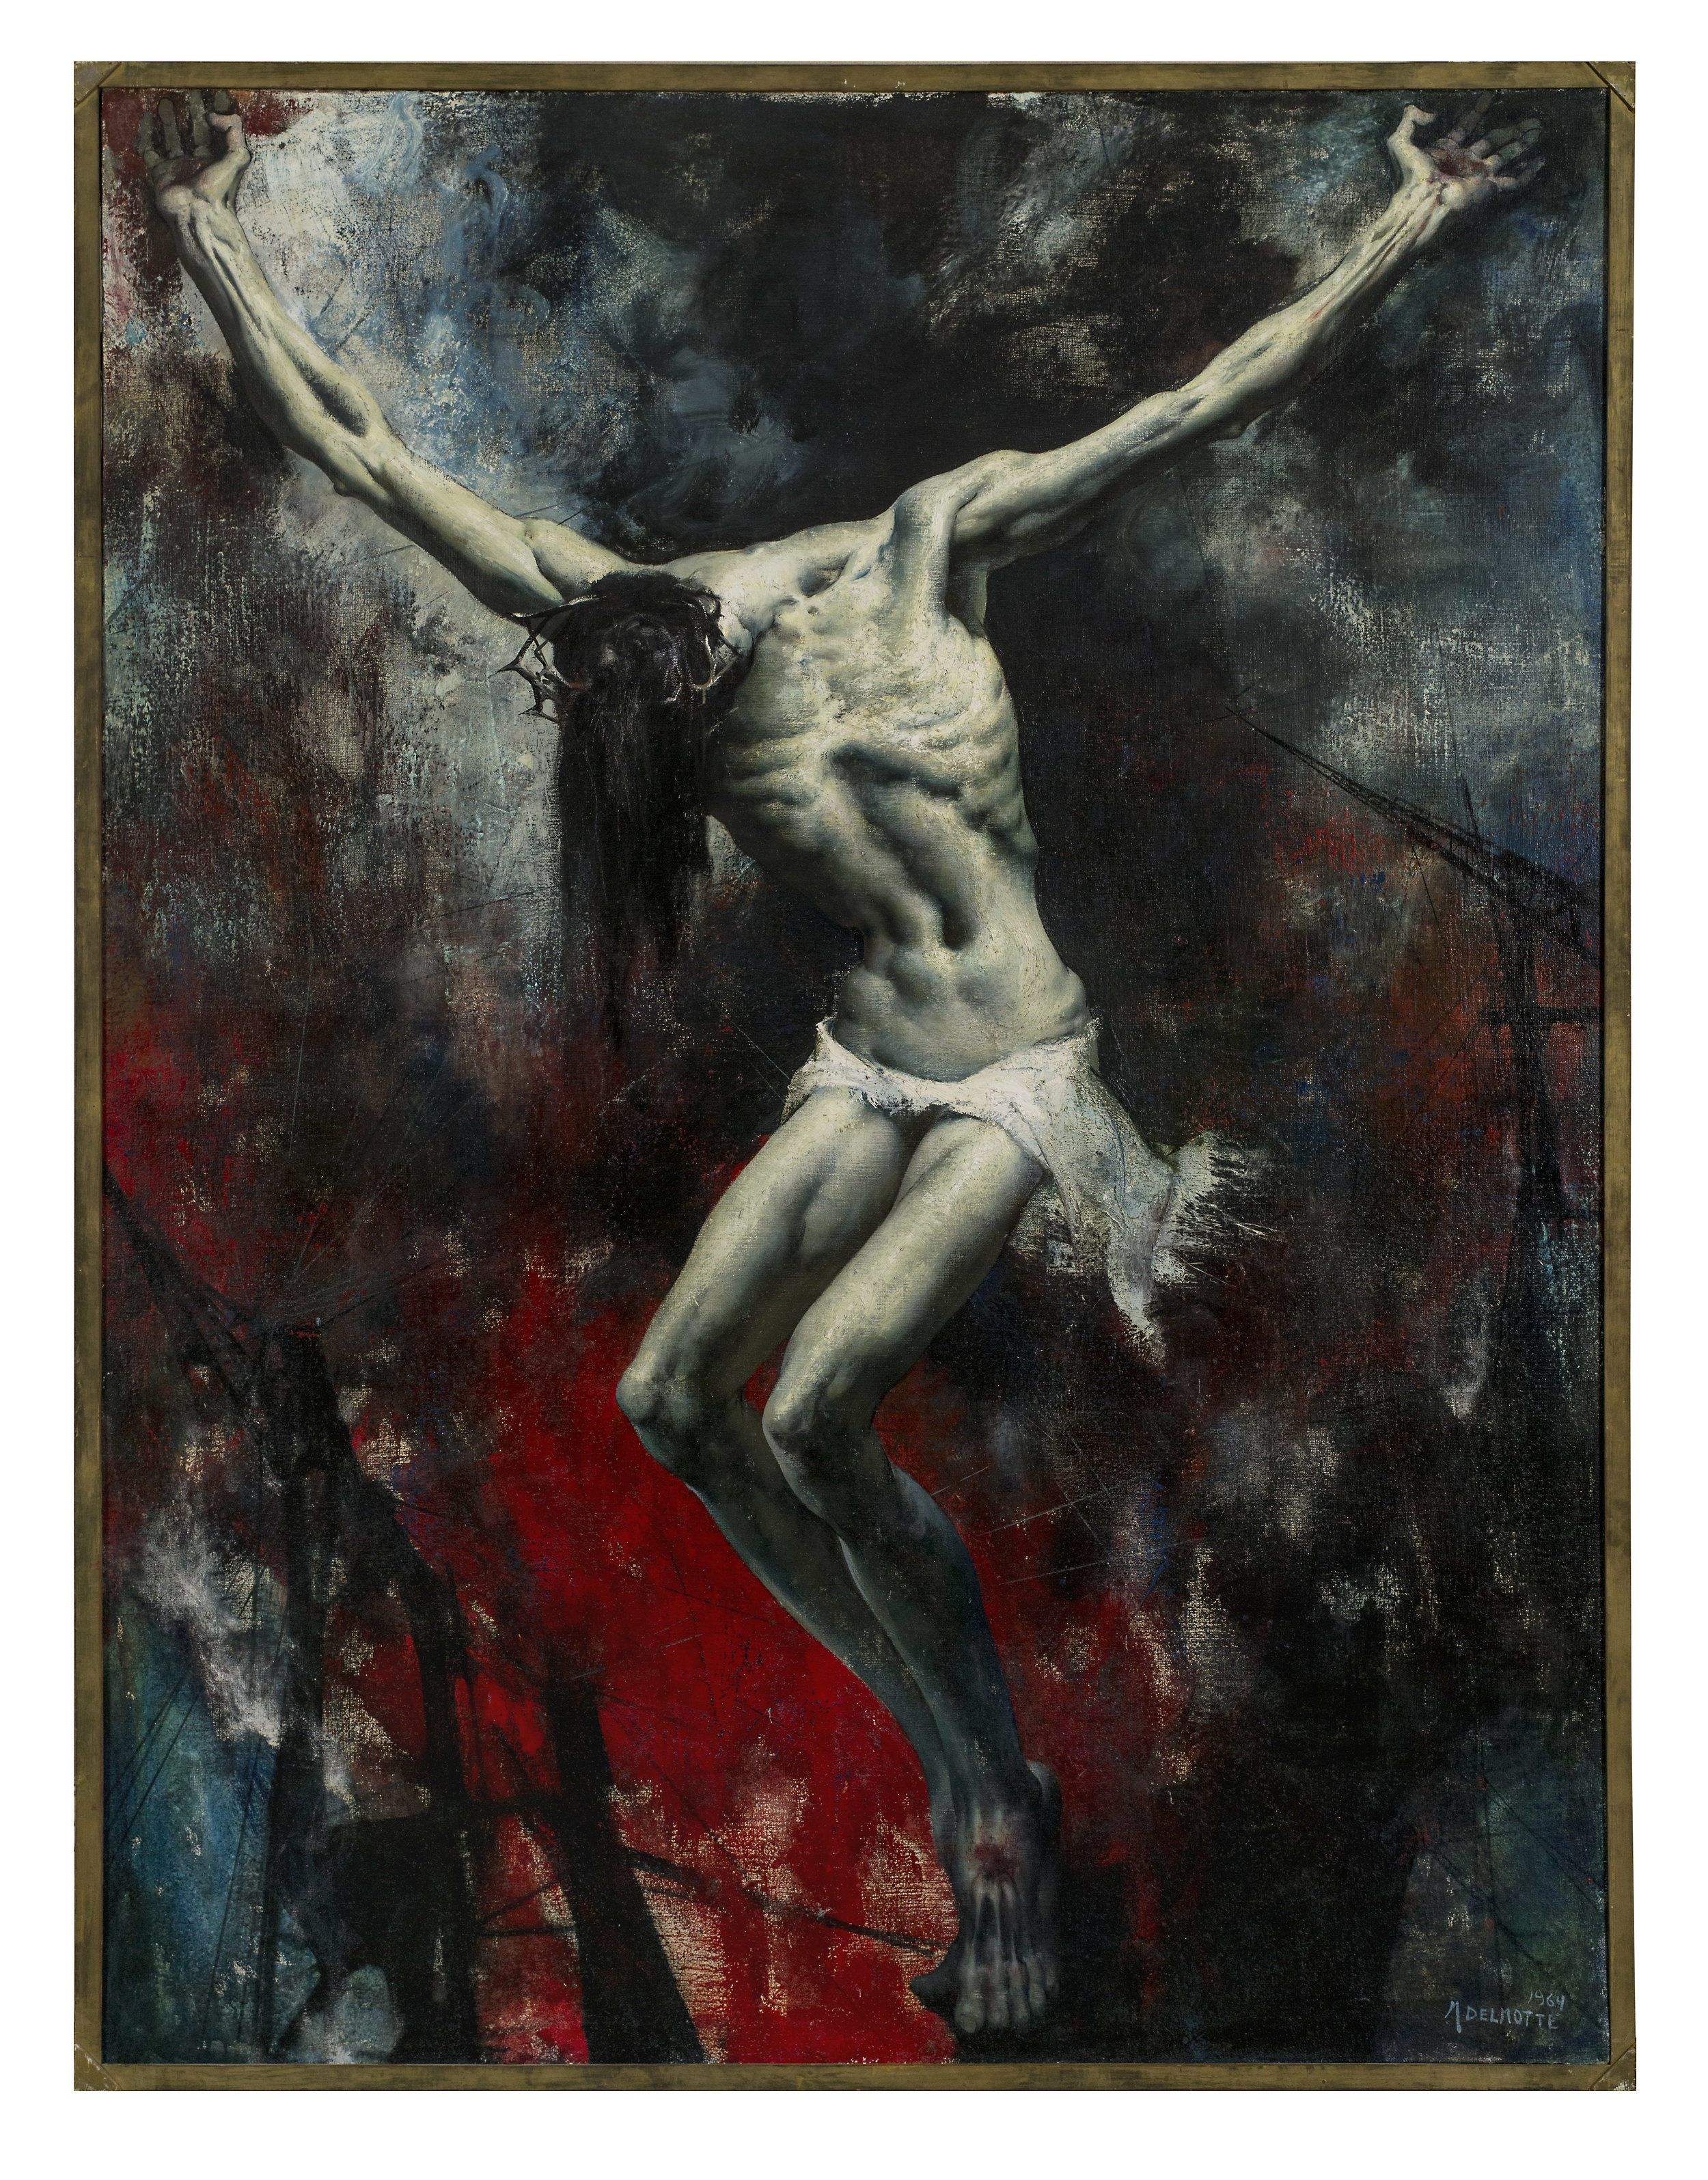 It could be argued that every painting Delmotte made, regardless of subject, functions as an allegory. - His paintings that depict the human figure, however, openly draw from deeply familiar stories and concepts that run throughout the history of Western culture: the loves of the Olympian gods, the suffering of Christ, the fear of death, the appeal of sensuality and carnal desires, the elation of physical beauty when juxtaposed with the despair of decay and destruction. He seemingly grafted together the harmonious proportions of classical sculpture with medieval expressions of faith, suffering, and apocalyptic endings. These narratives of the primeval origins of life, ancient mythology, Christianity, and modern society and its potentially wonderful and harmful technological developments are presented in his paintings as a means of understanding the human condition.